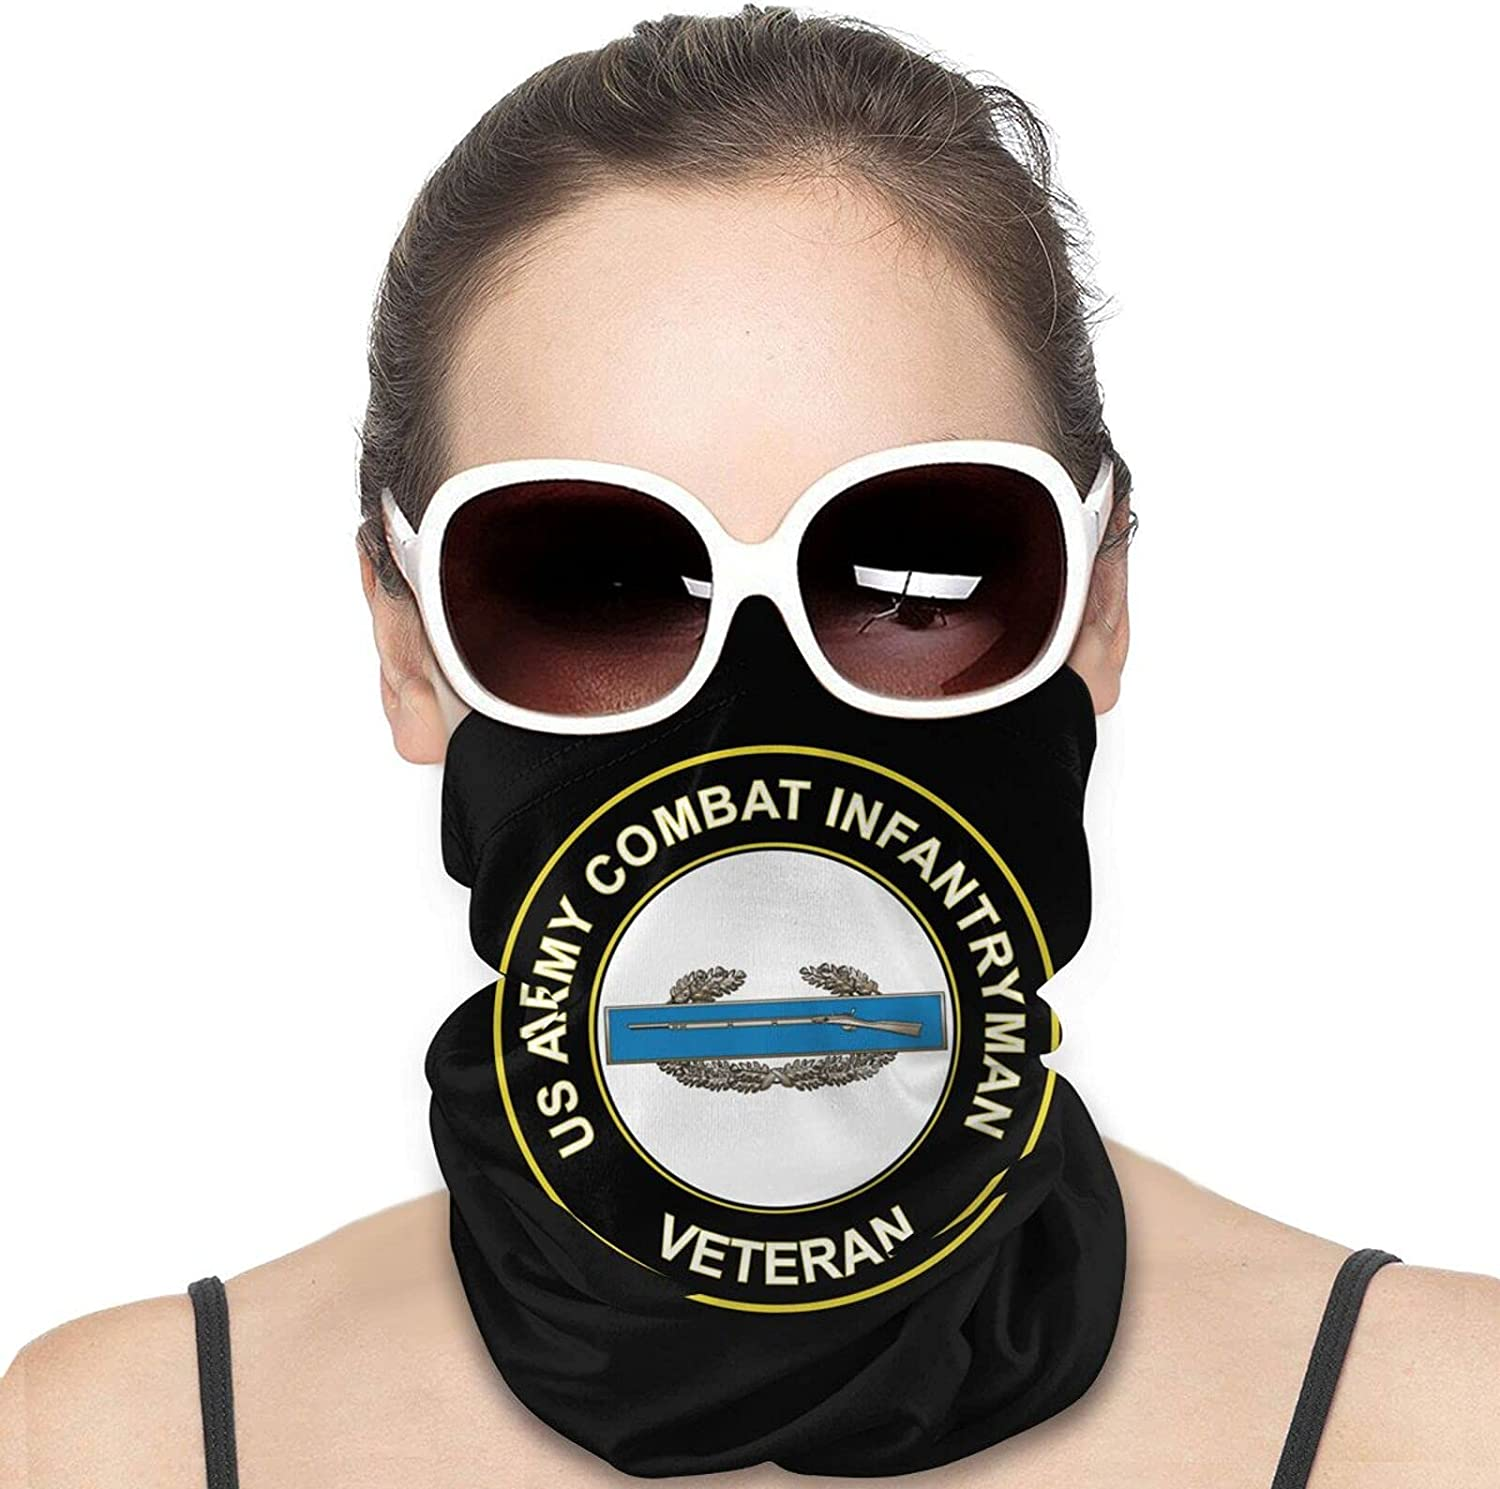 U.S. Army Combat Infantryman CIB 1st Award Veteran Round Neck Gaiter Bandnas Face Cover Uv Protection Prevent bask in Ice Scarf Headbands Perfect for Motorcycle Cycling Running Festival Raves Outdoors